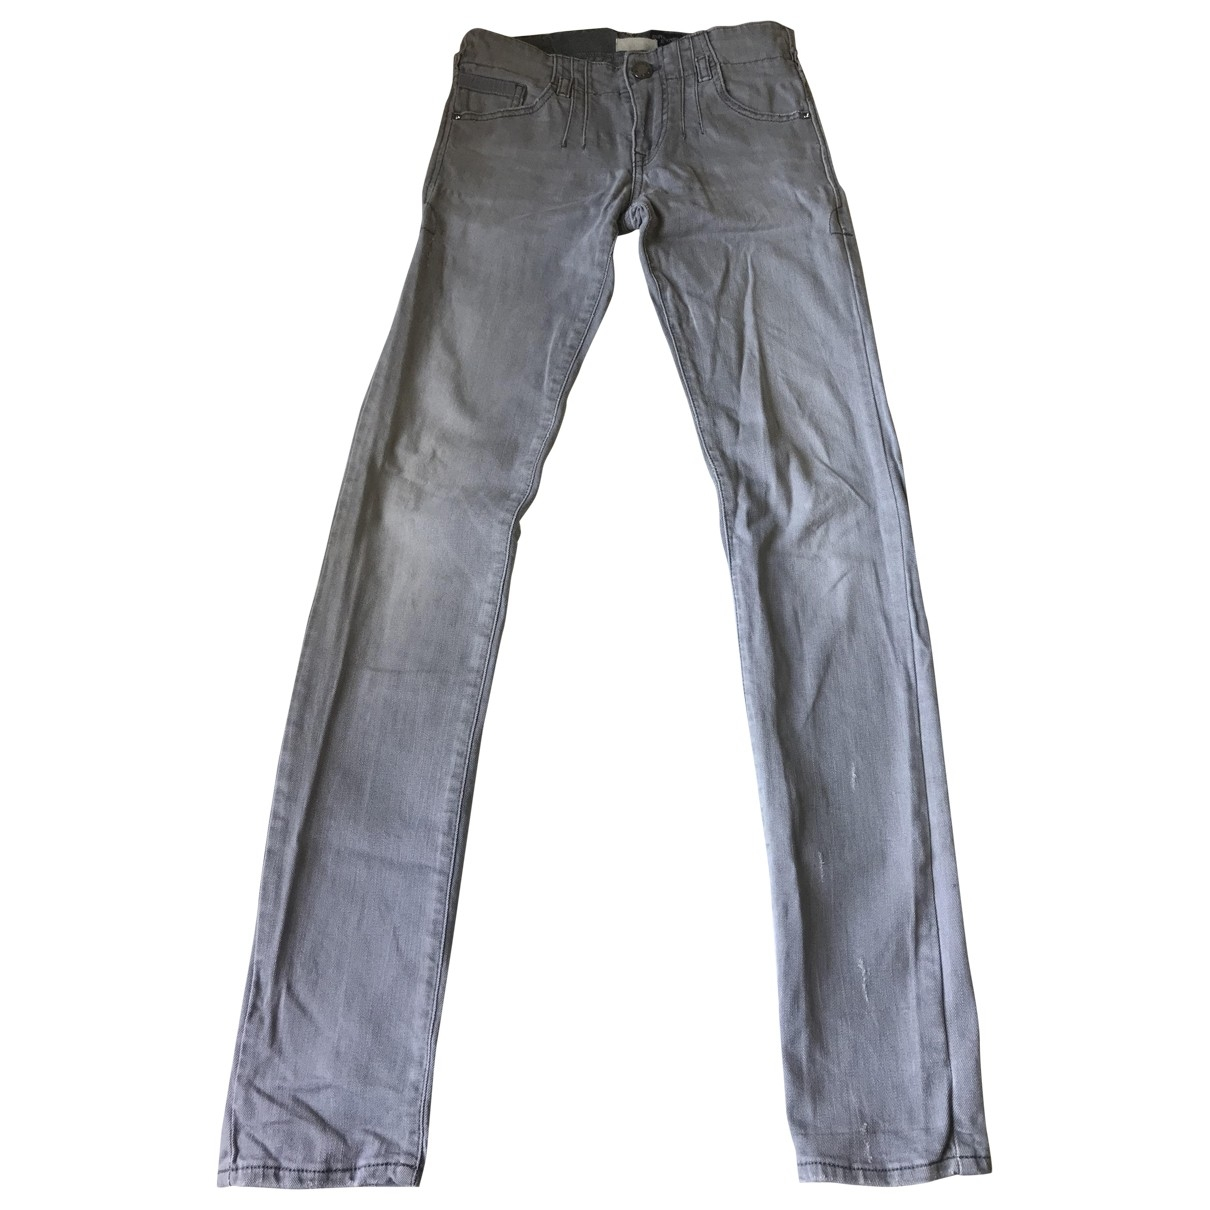 Emporio Armani \N Grey Denim - Jeans Jeans for Women 32 FR